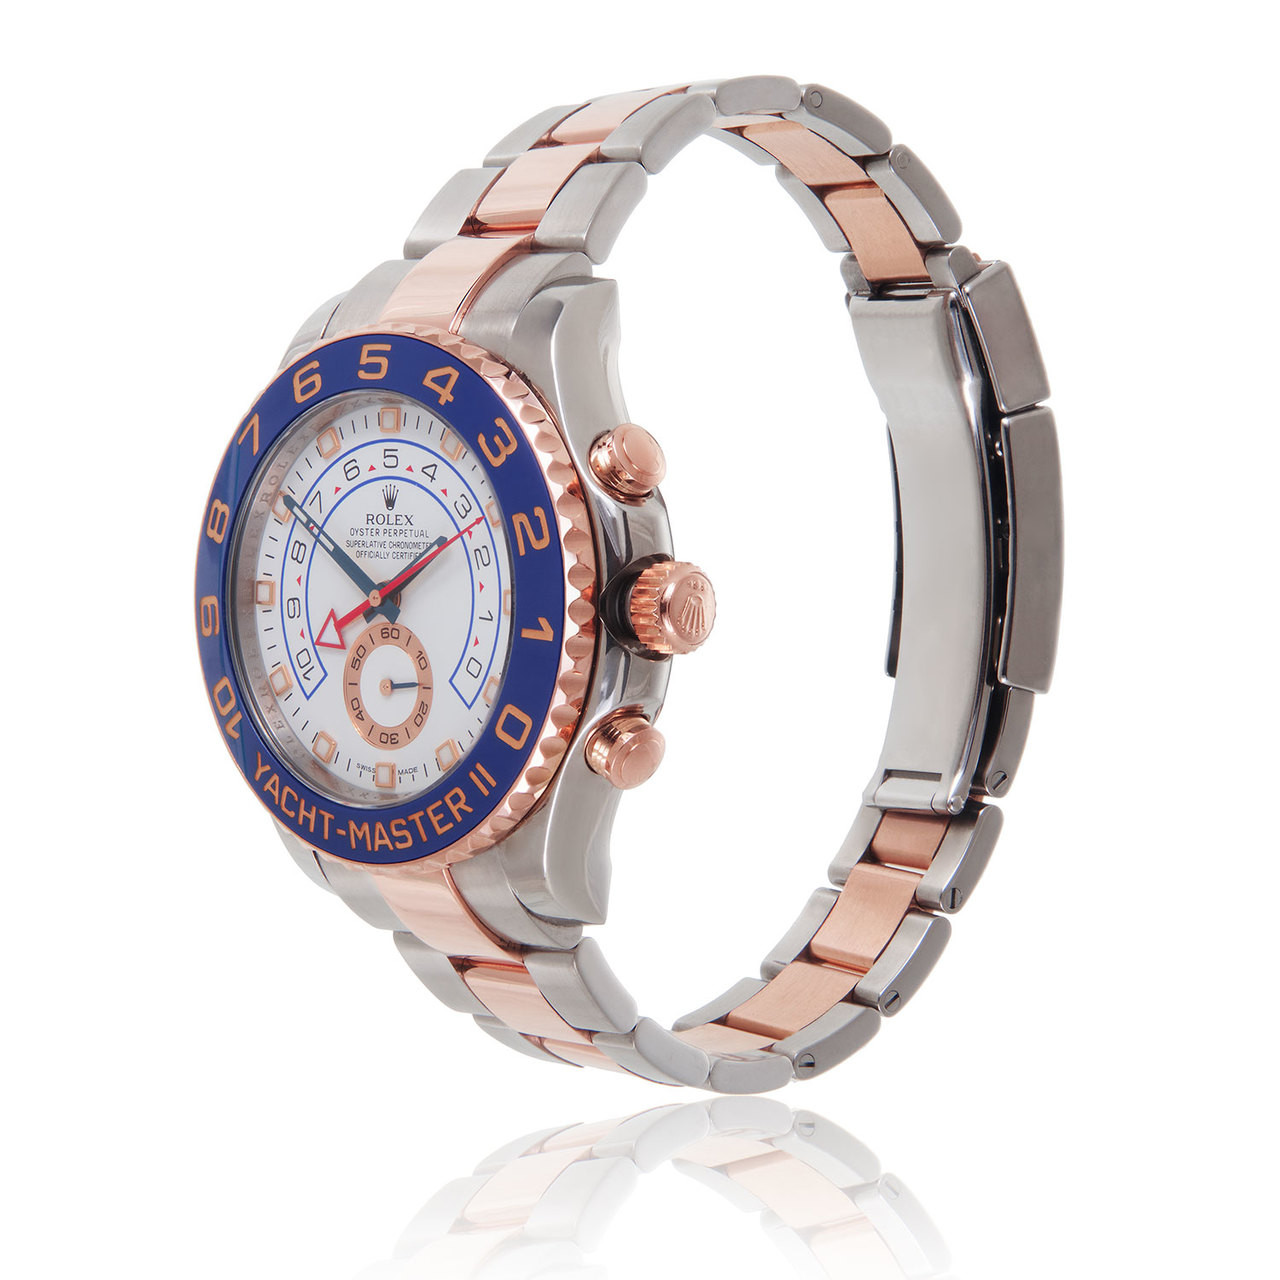 16cb64888 Home · Men's Jewelry · Rolex Two-Tone Yacht-Master II 18k Rose Gold  Automatic Men's Watch. Previous